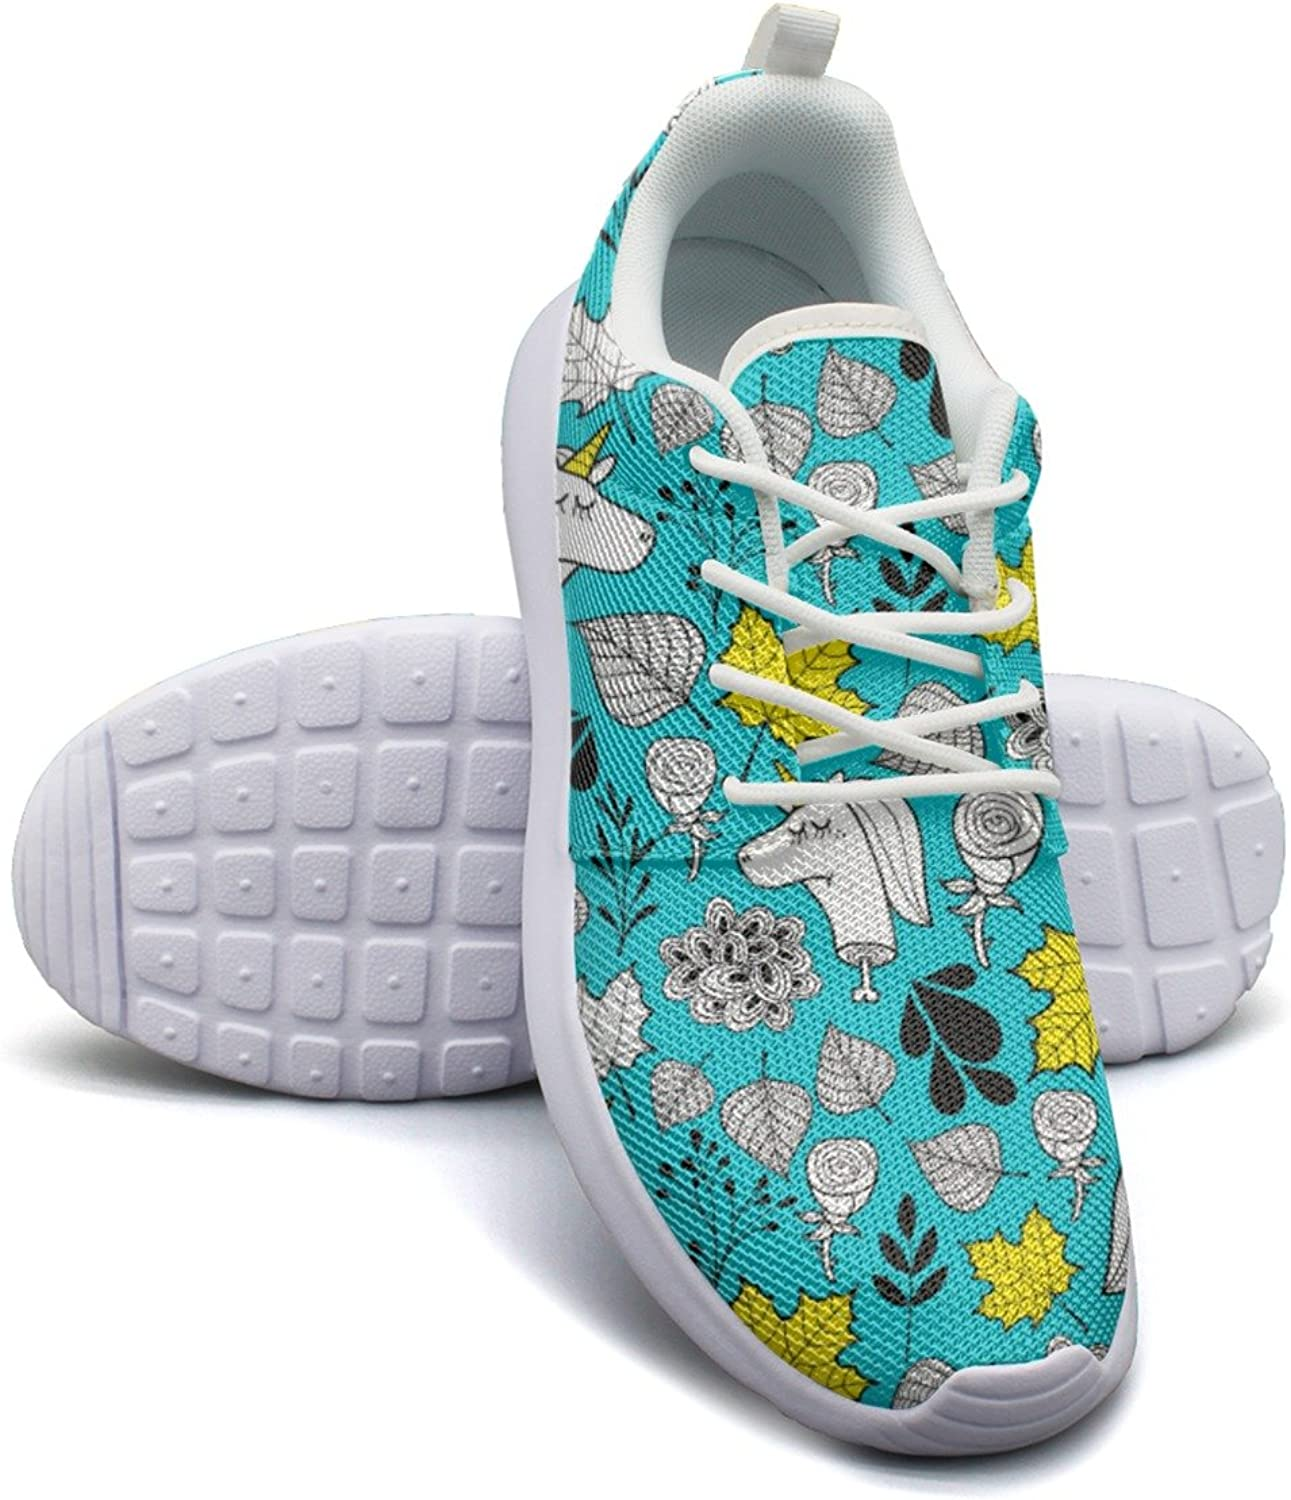 The Number of Horns On A Unicorn Women's Lightweight Mesh Sneakers Cool Boat shoes